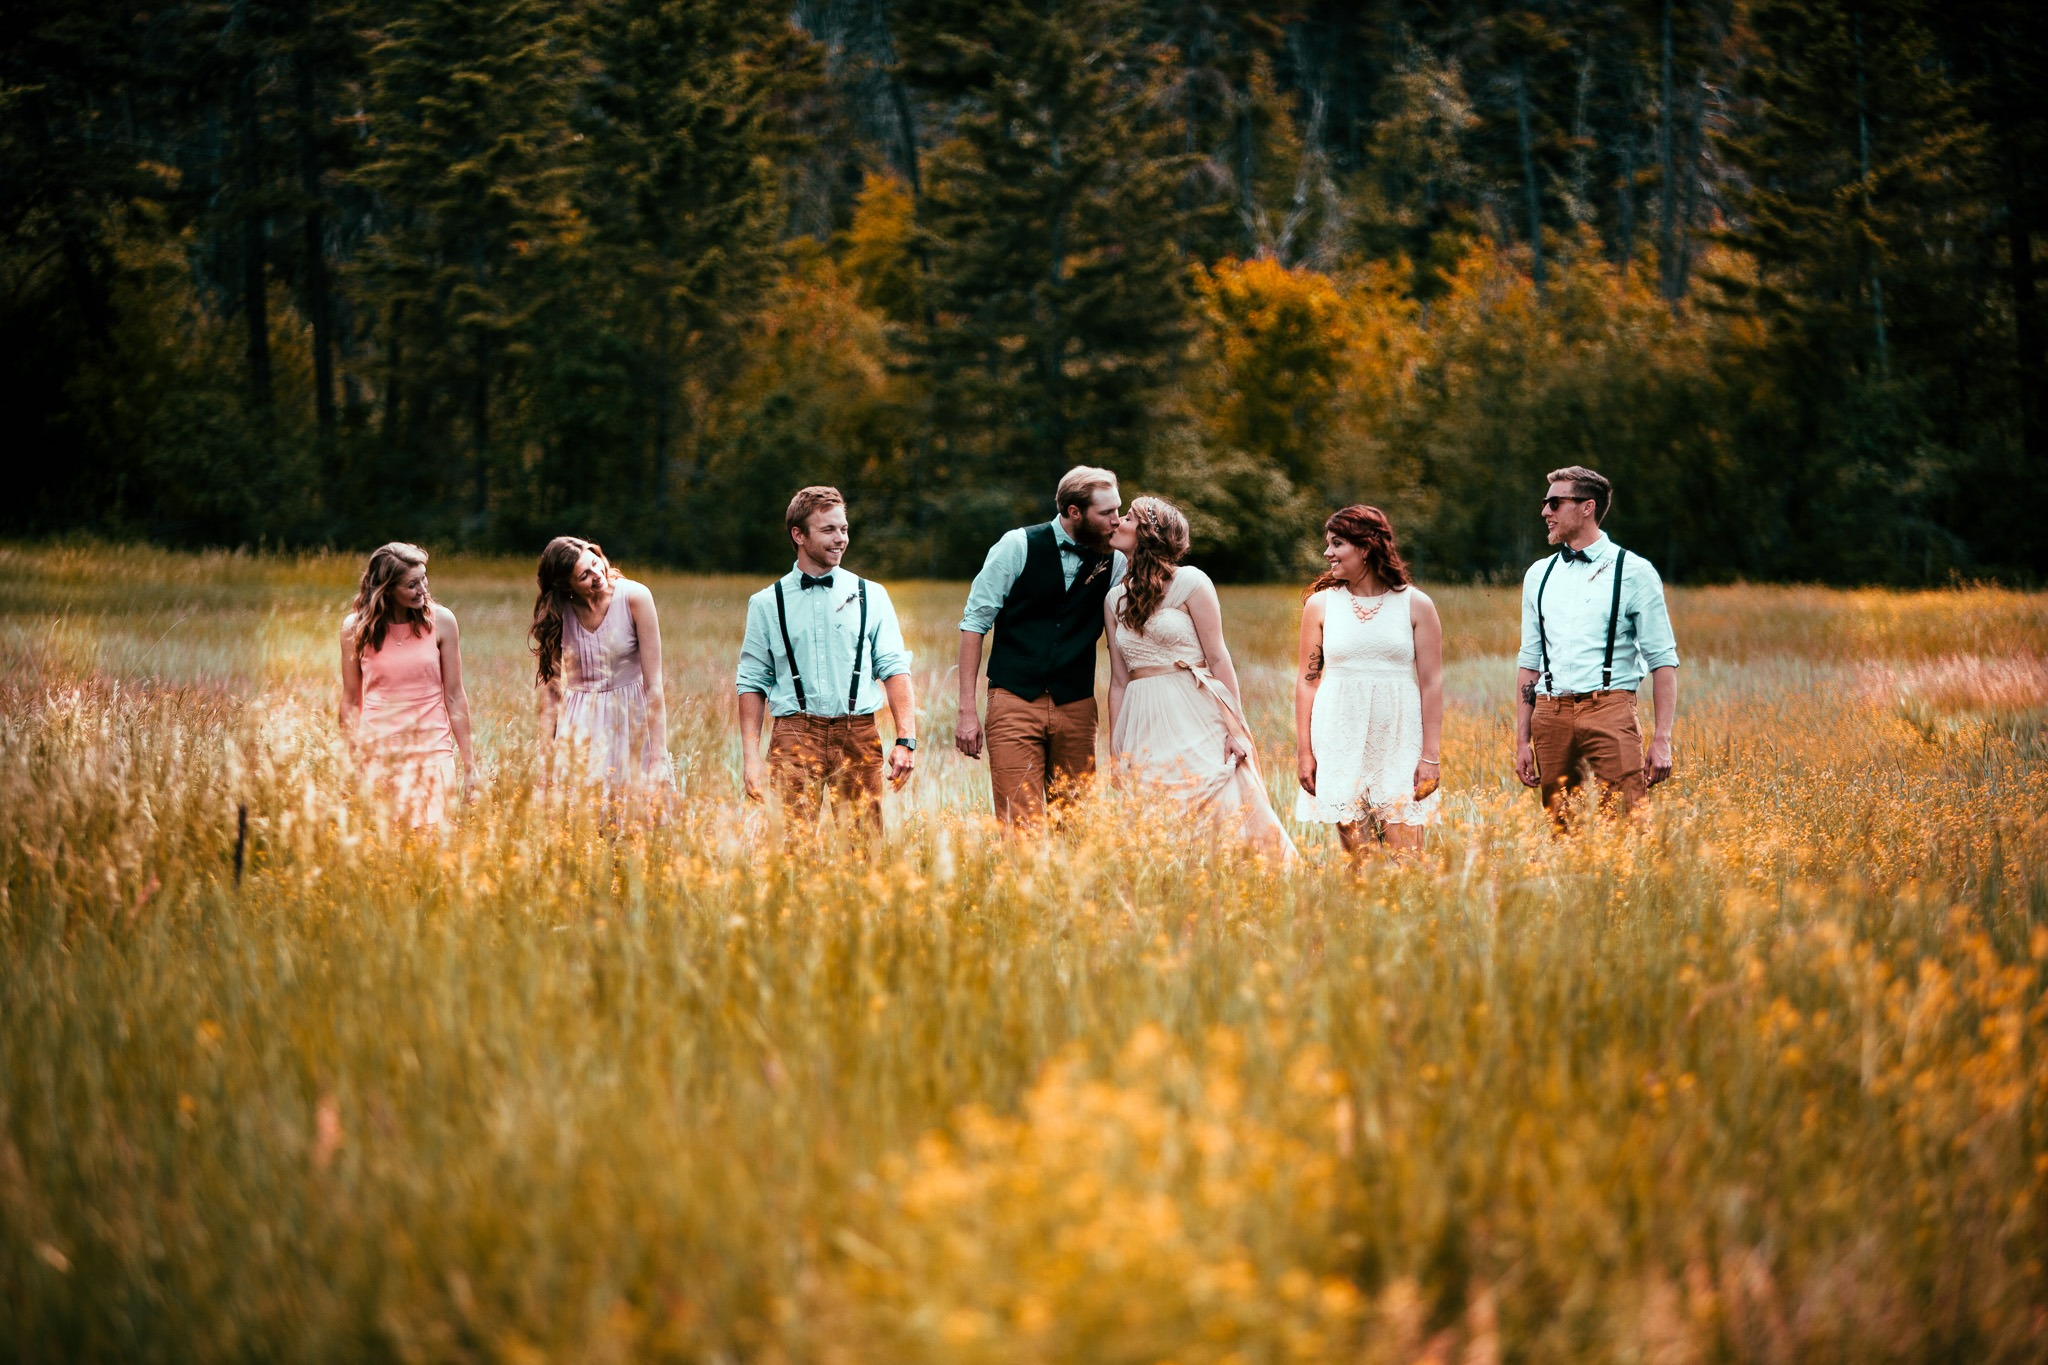 Stephen & Jenny Wedding - Tailored Fit Photography-0453